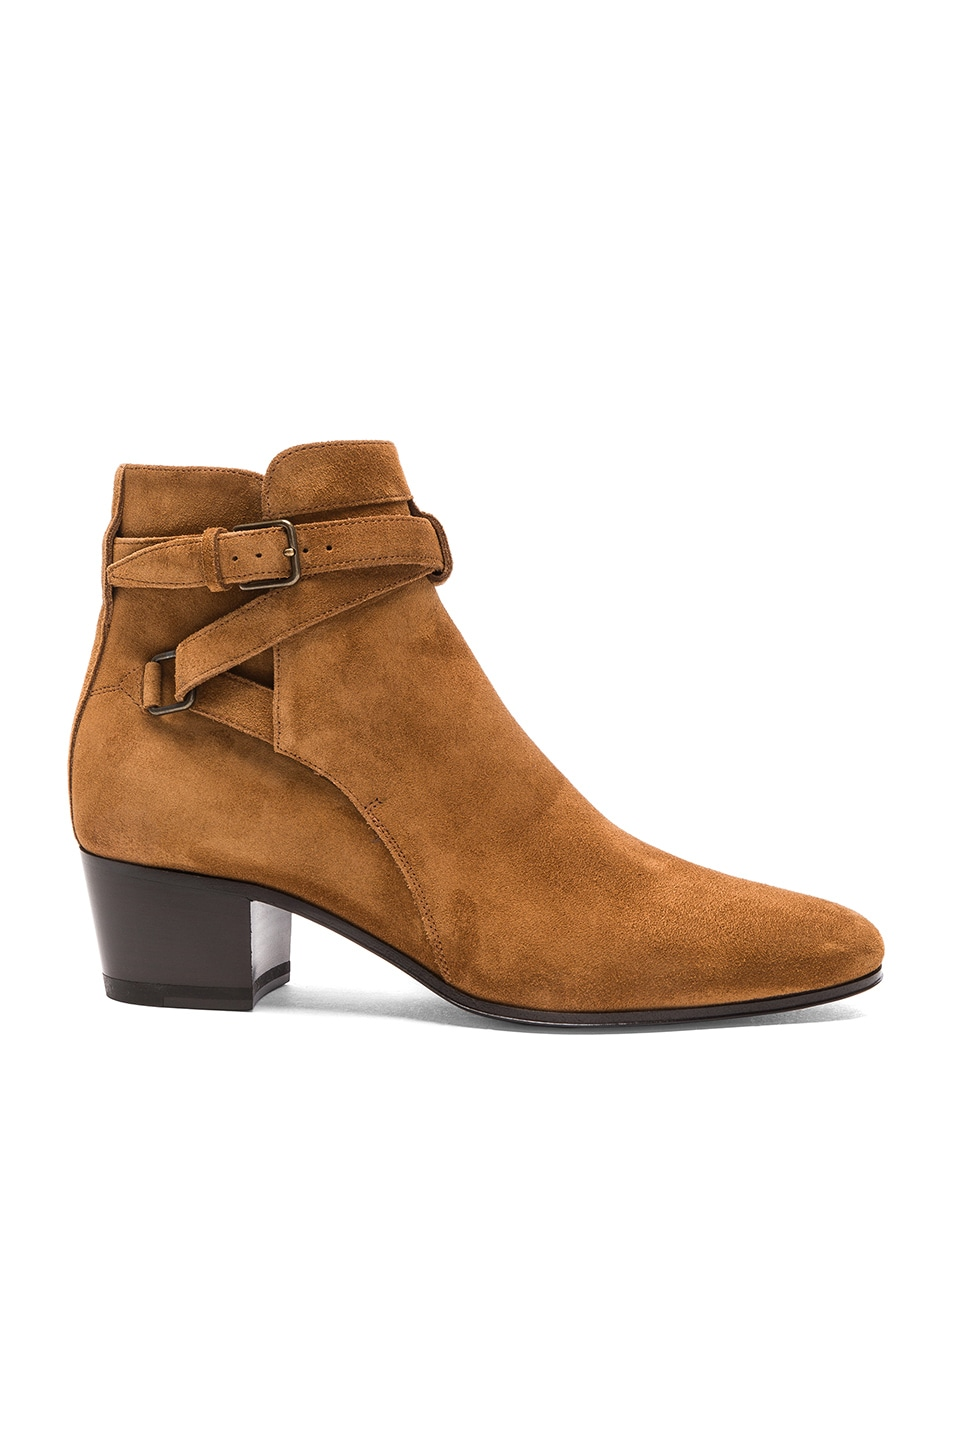 Image 1 of Saint Laurent Suede Blake Boots in Fox